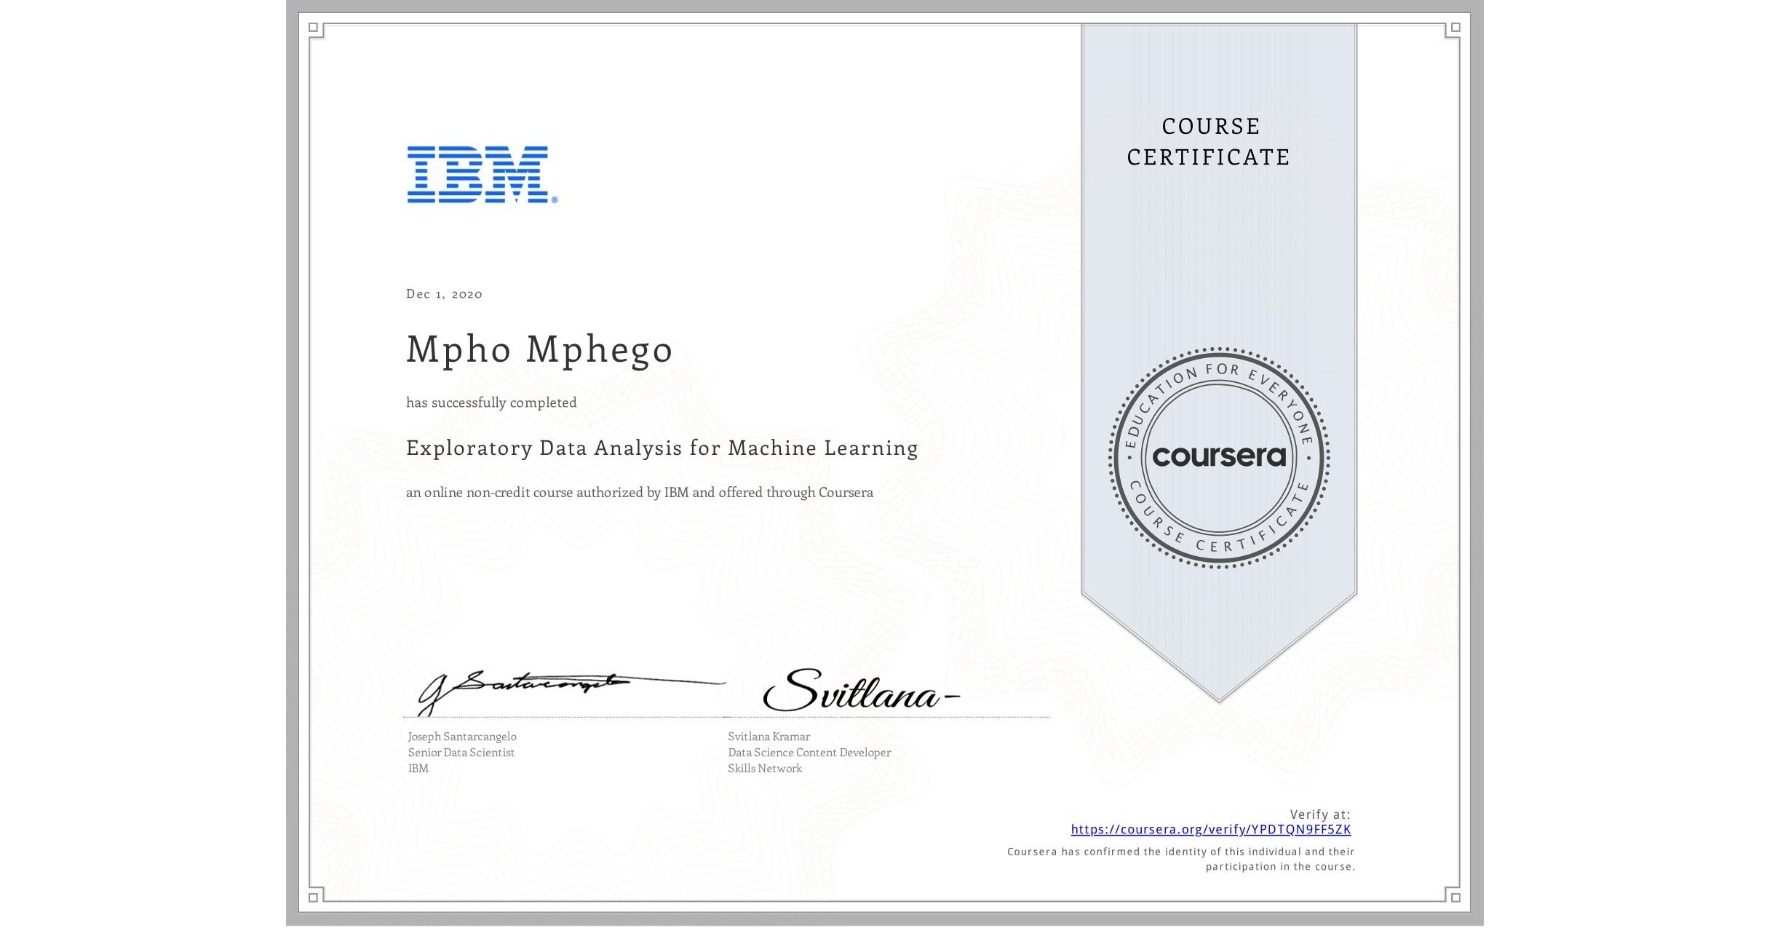 View certificate for Mpho Mphego, Exploratory Data Analysis for Machine Learning, an online non-credit course authorized by IBM and offered through Coursera